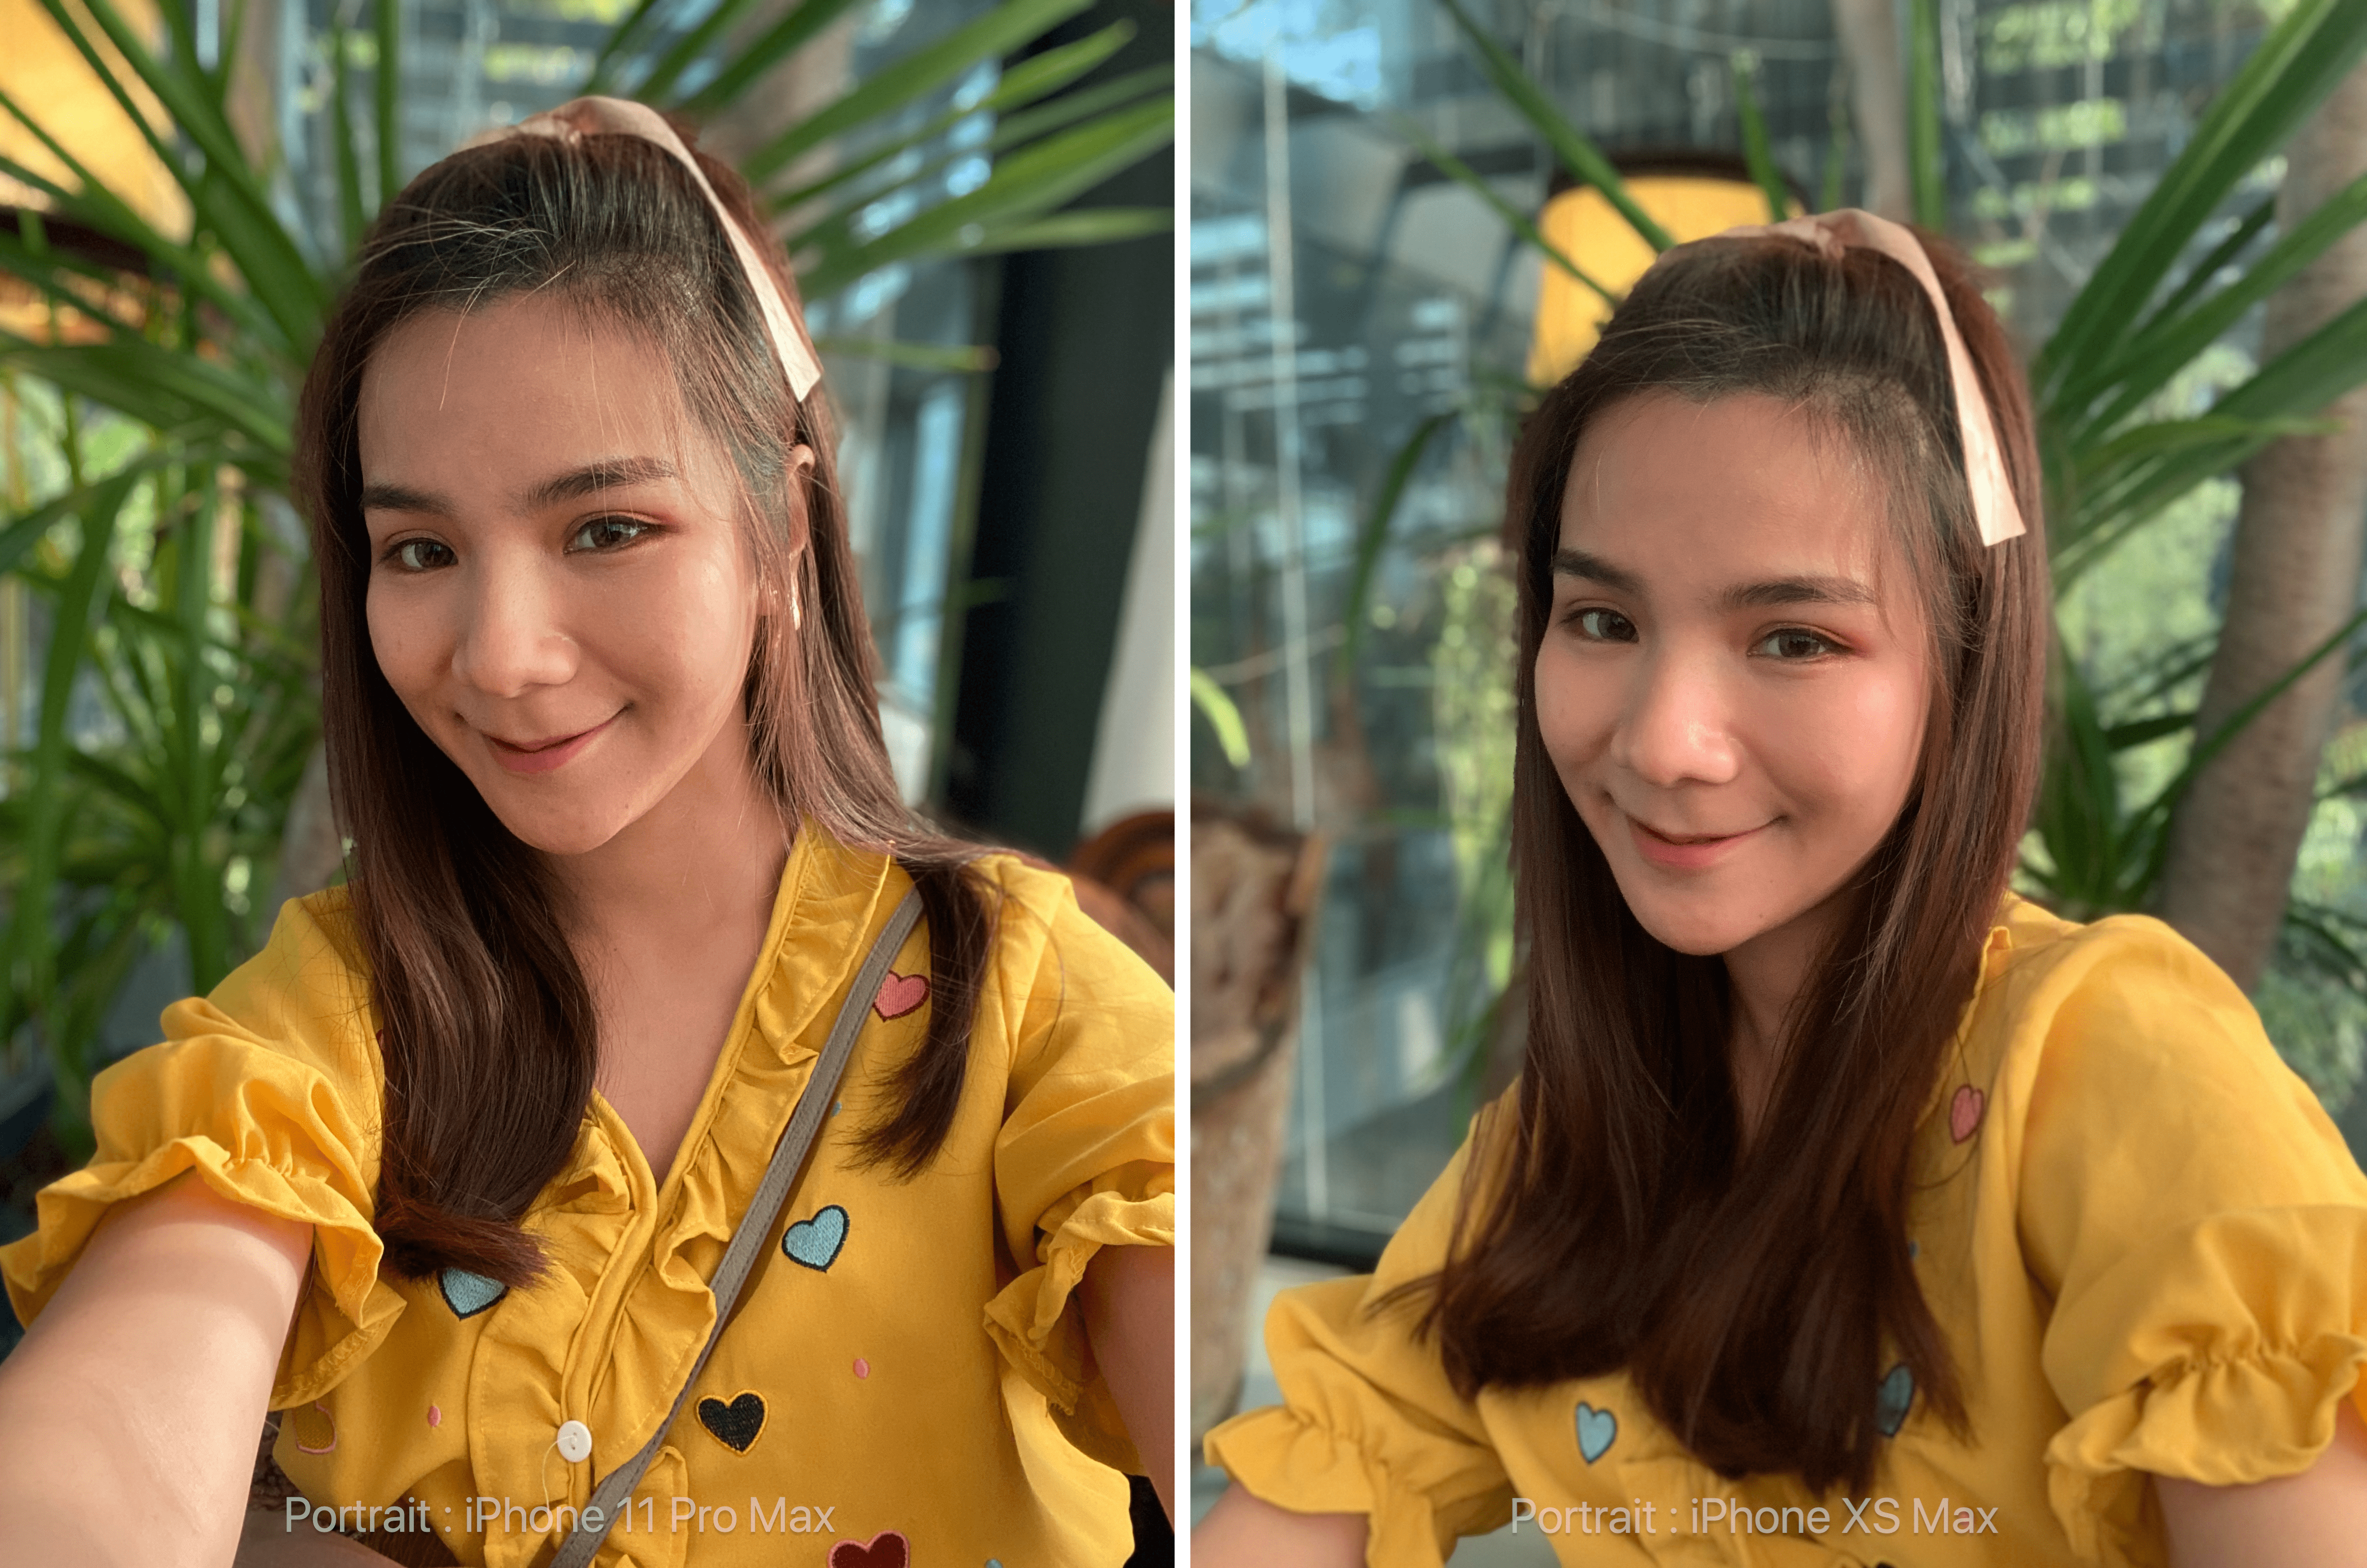 Iphone 11 Pro Max And Iphone Xs Max Sefie Photo Compare Img 5